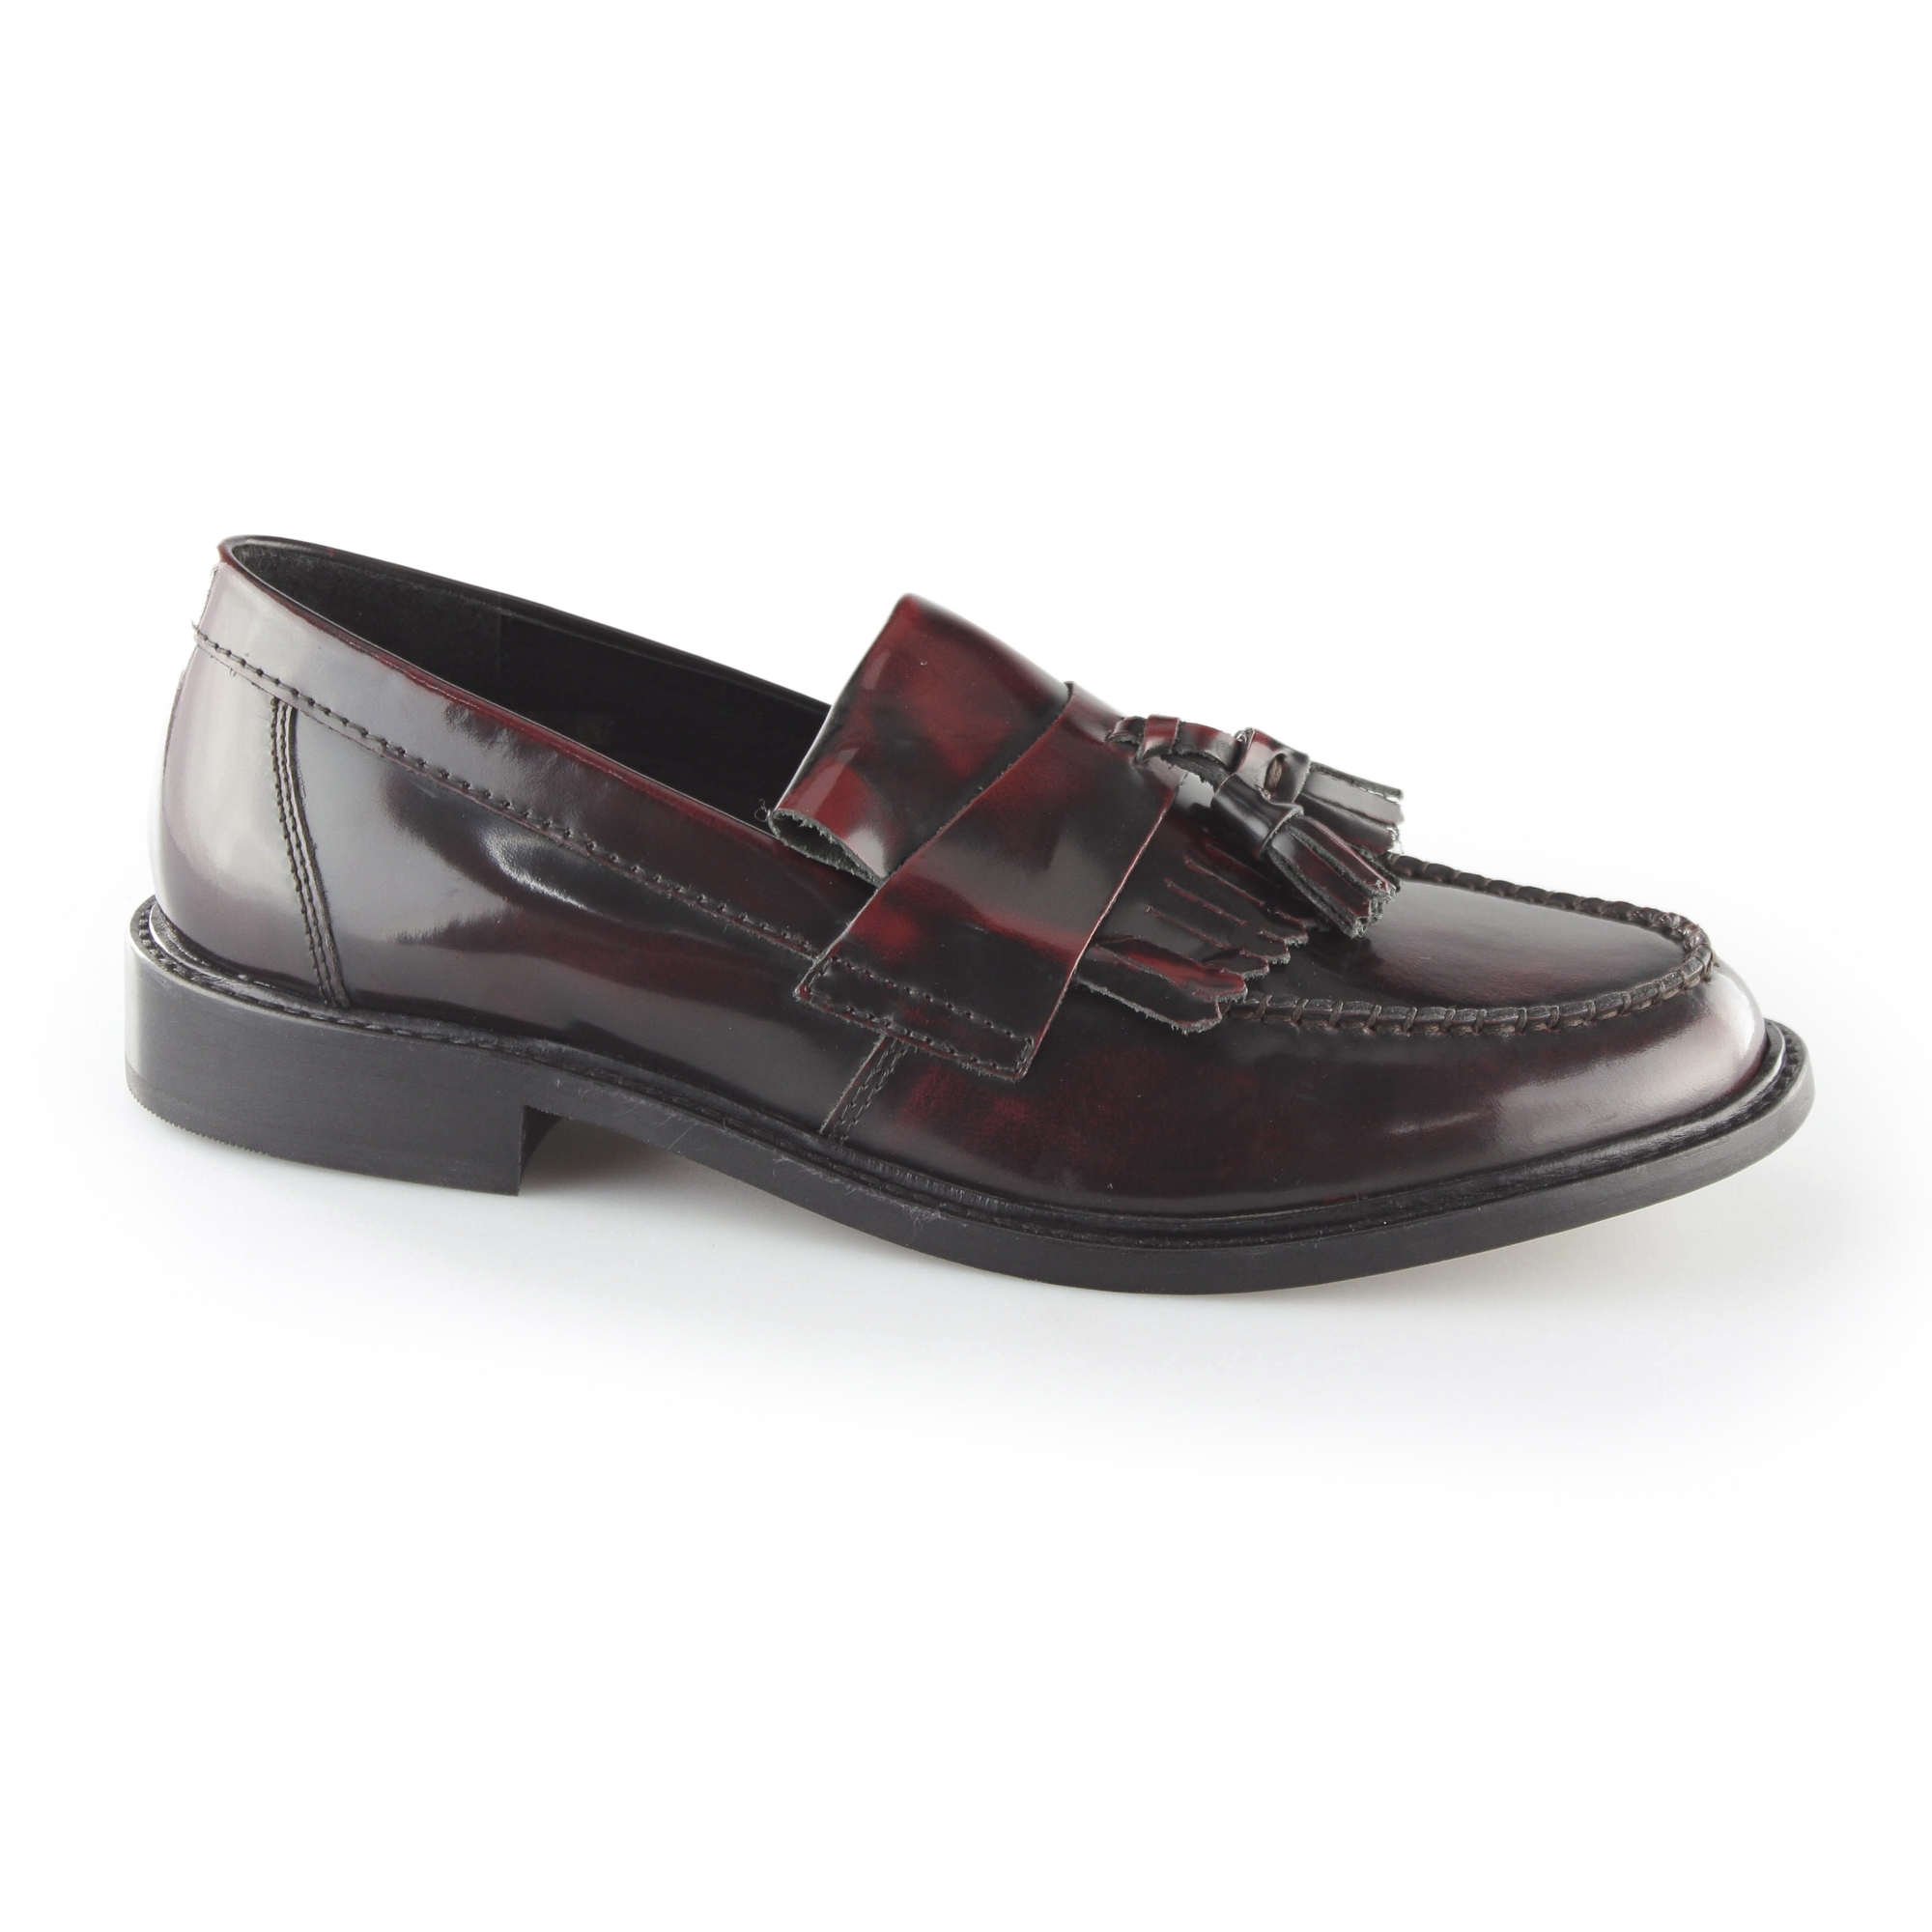 94af4033222b1 Ikon SELECTA II Mens Polished Leather Tassel Loafers Oxblood